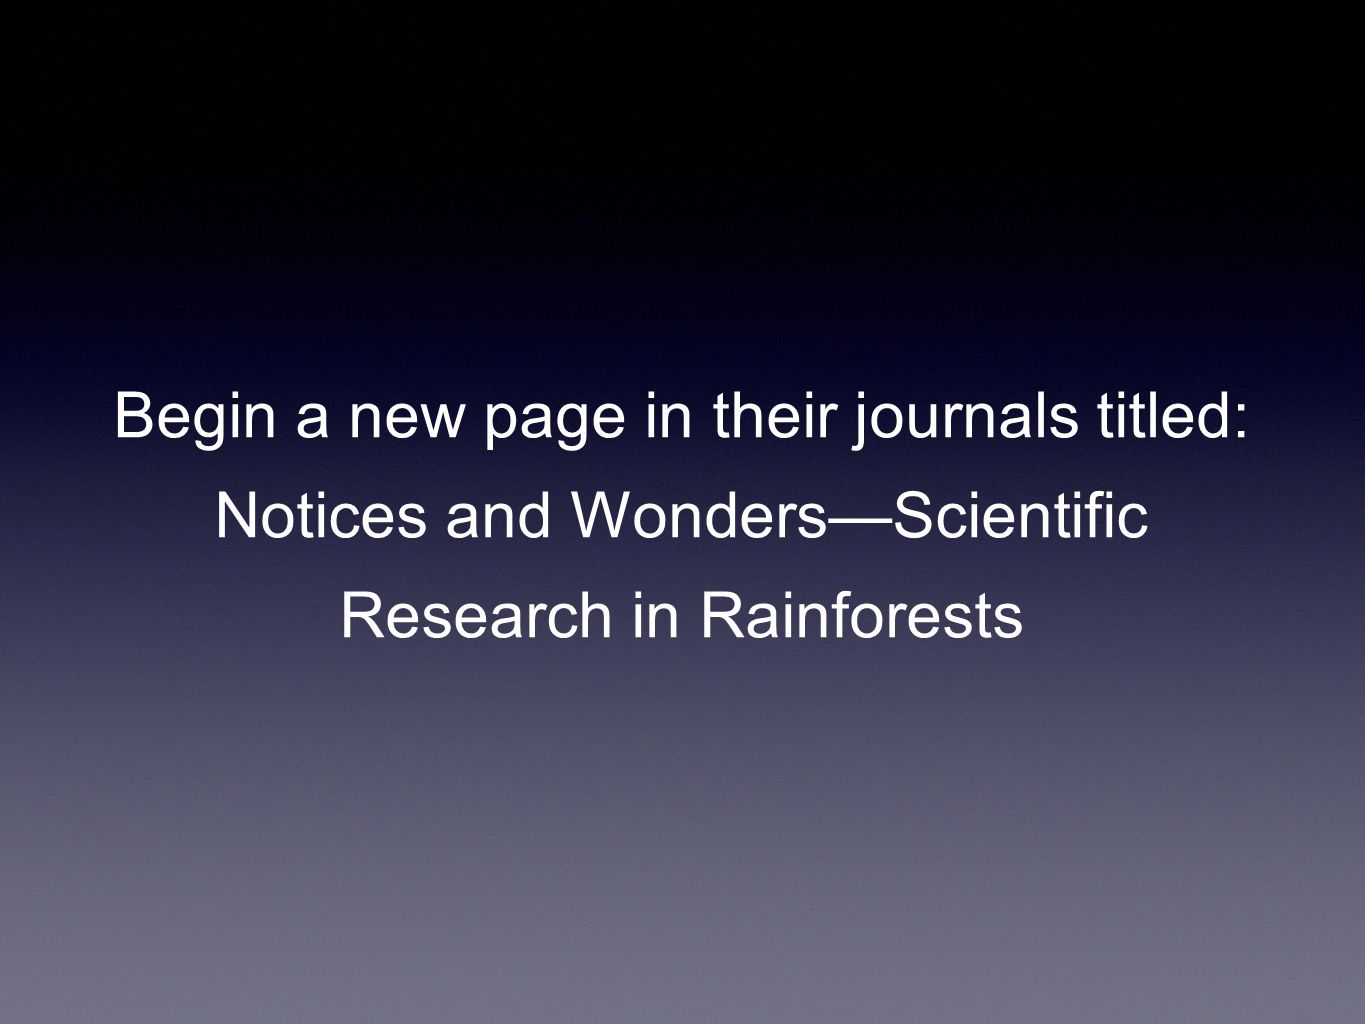 Begin a new page in their journals titled: Notices and Wonders—Scientific Research in Rainforests